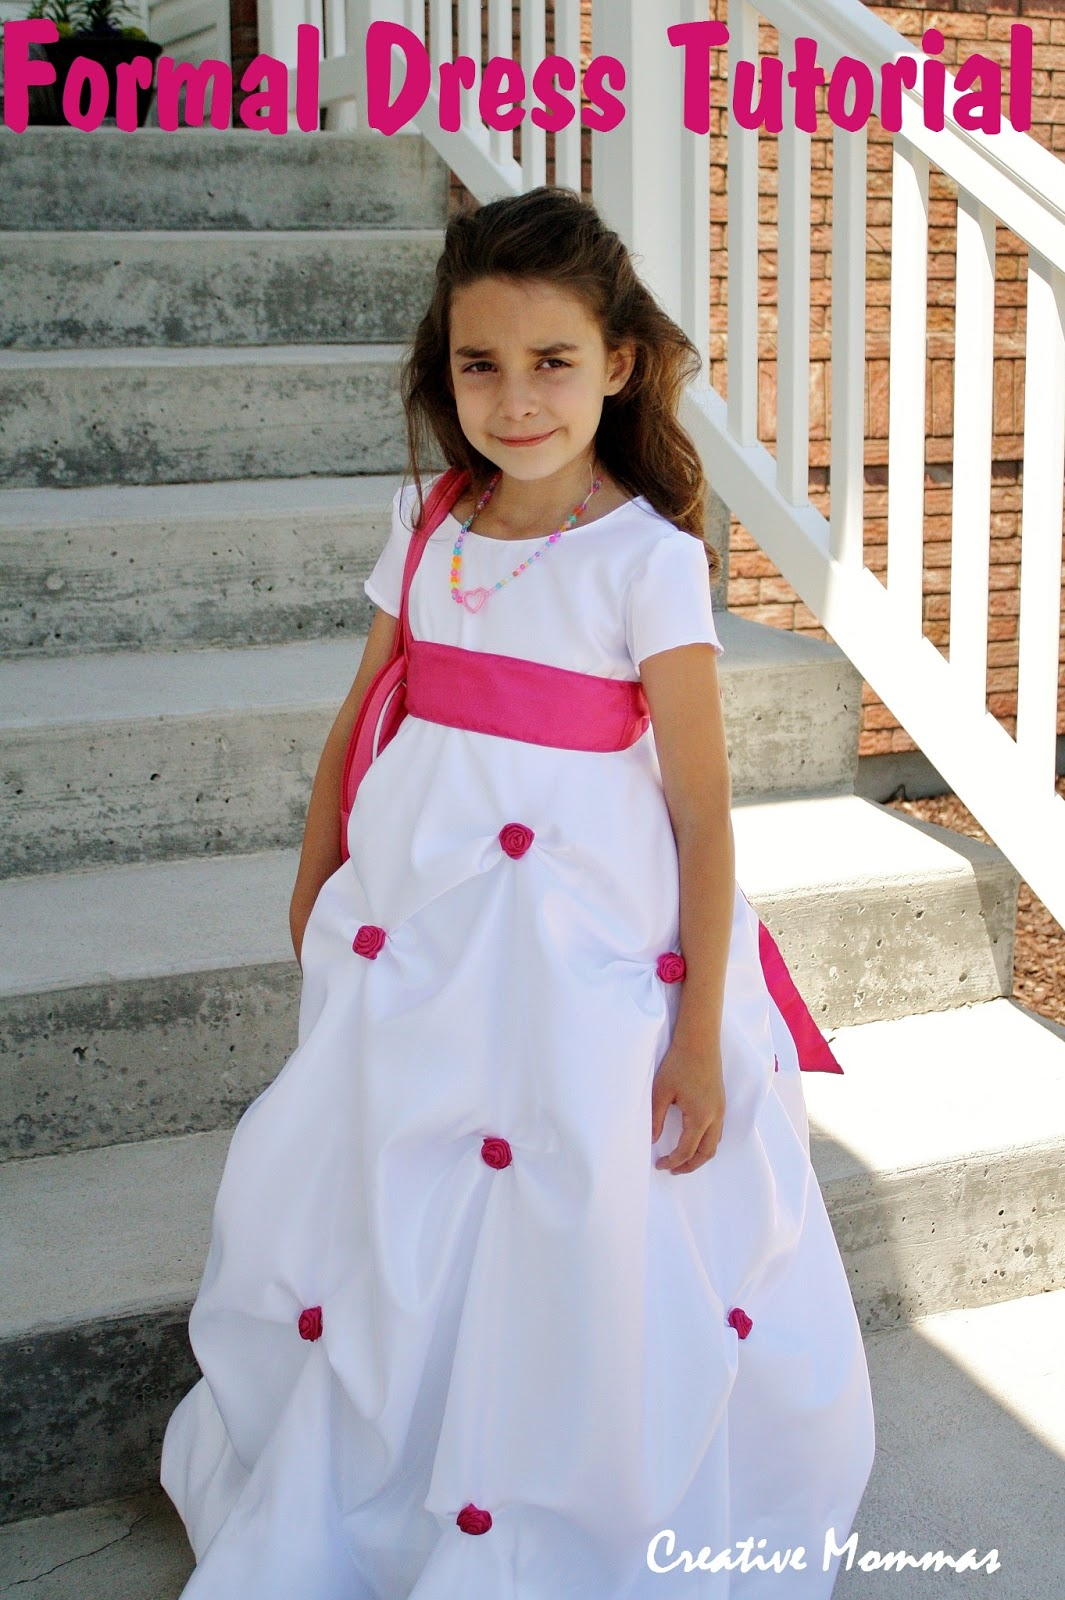 Creative Mommas: Little Girl Formal Dress Tutorial